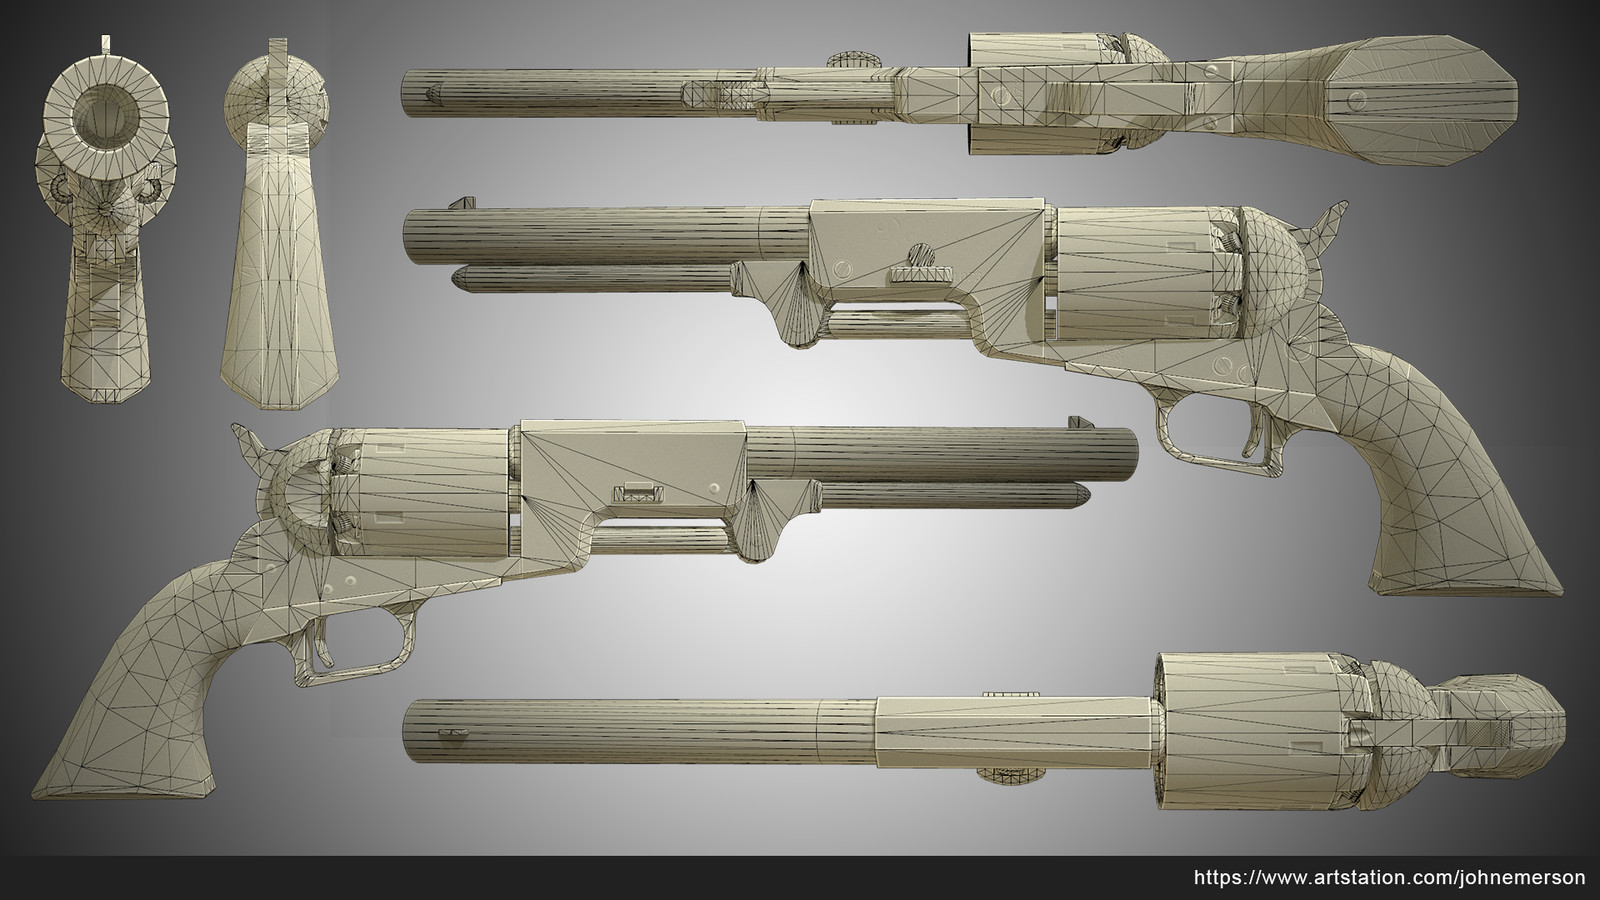 Colt 1847 Wireframe, Ambient Occlusion, Normal, and Cavity